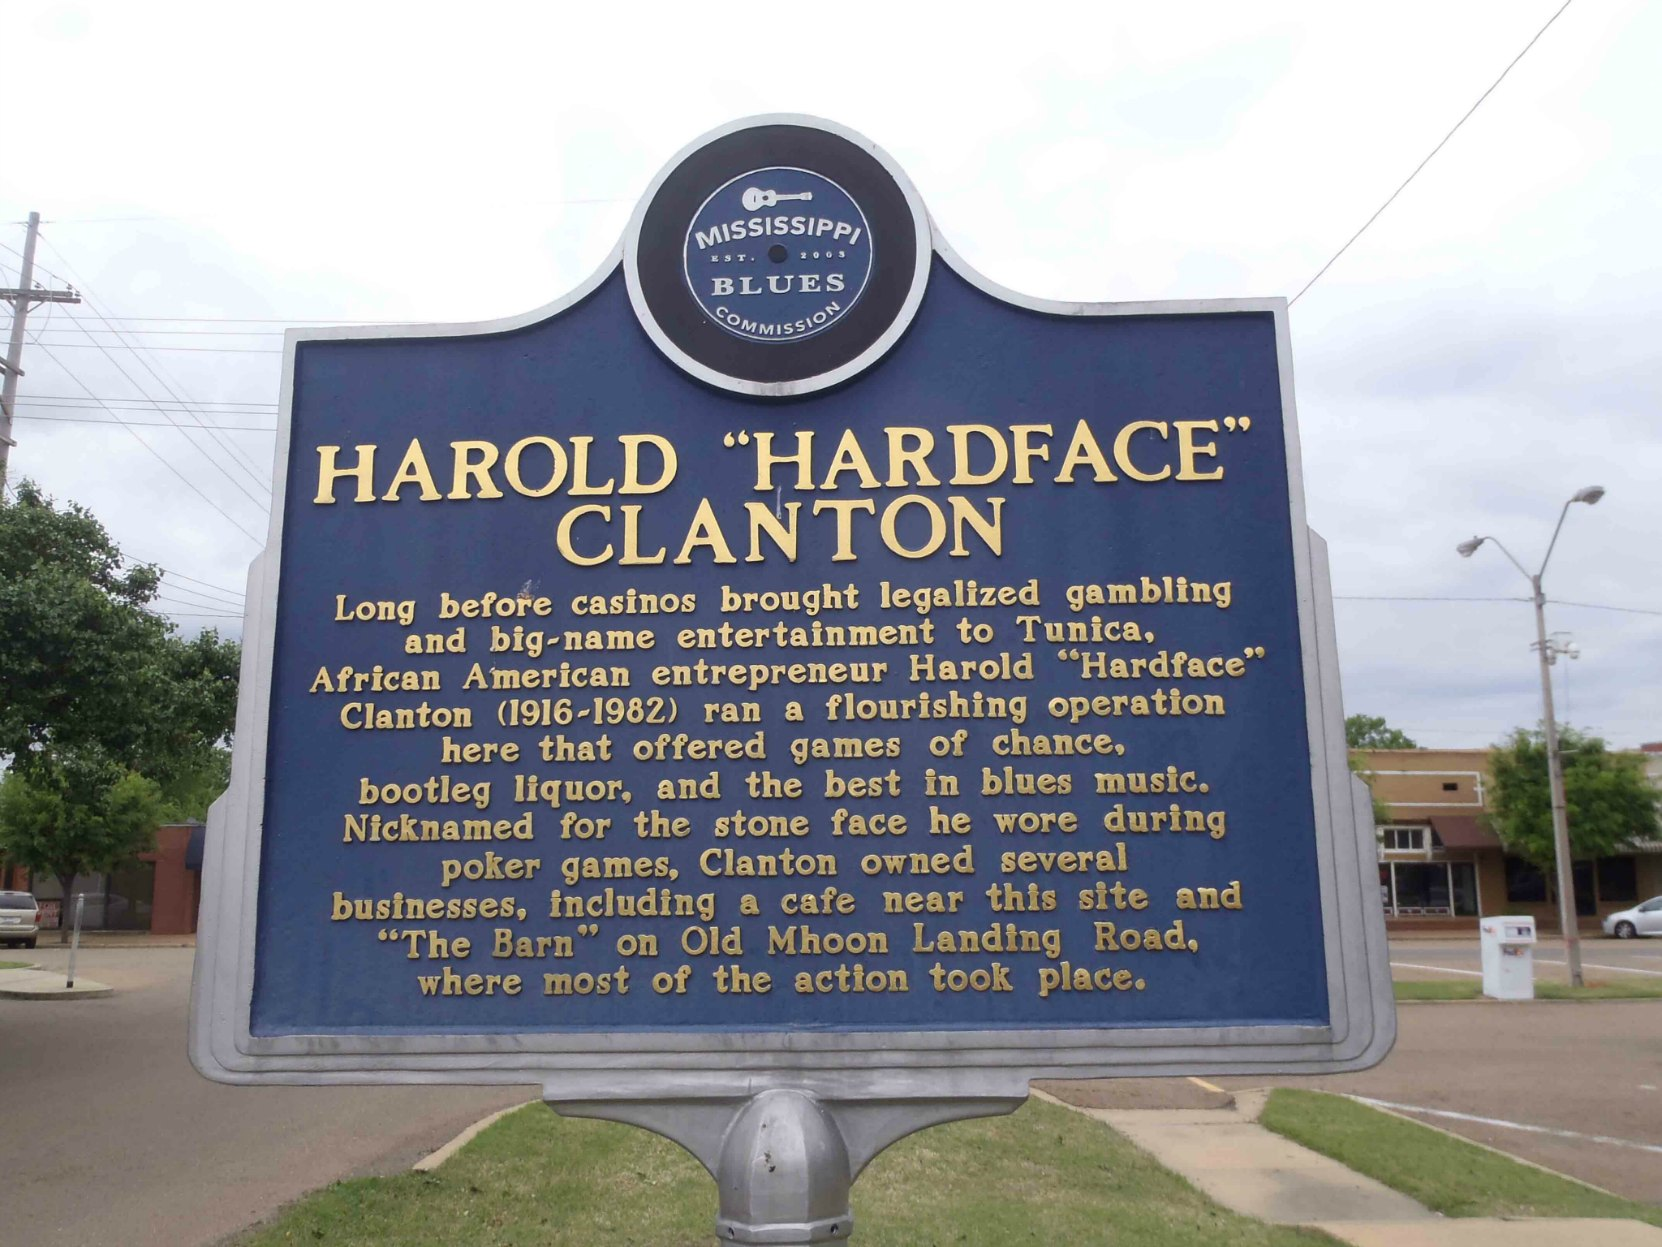 Mississippi Blues Trail marker commemorating Hardface Clanton, Tunica County, Mississippi